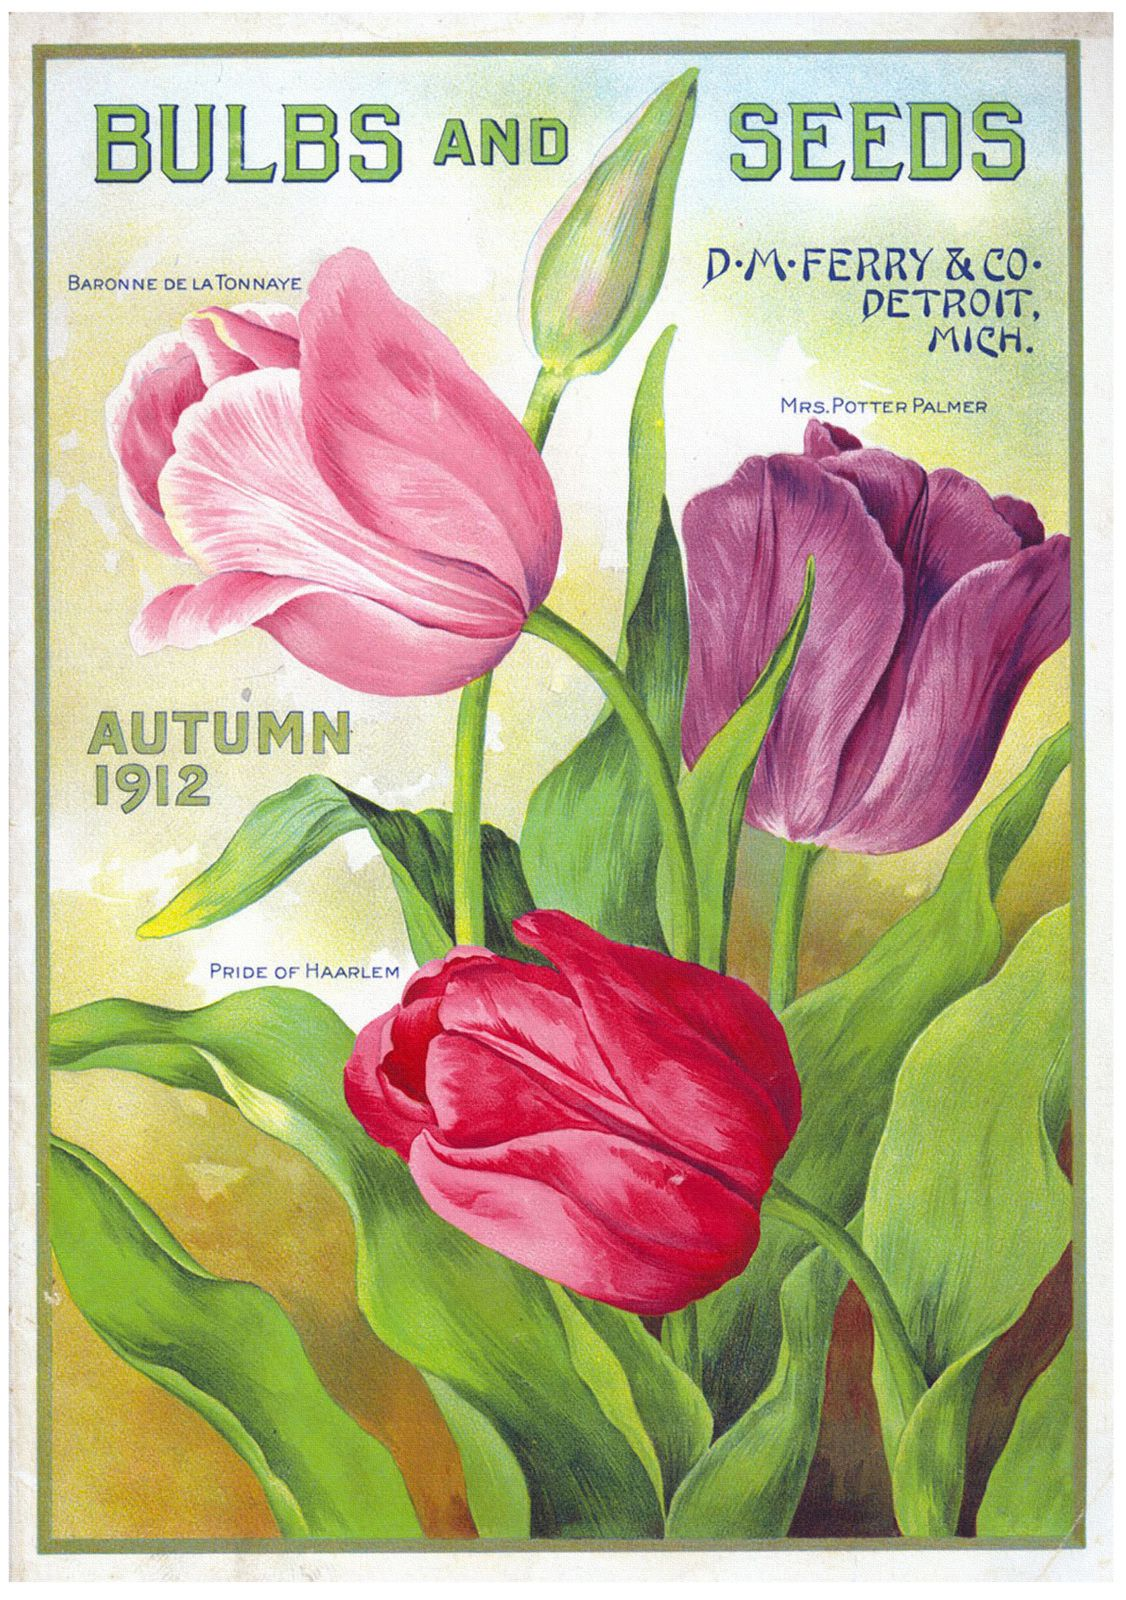 Freebies vintage scans cards theme autumn : bulbs and seeds